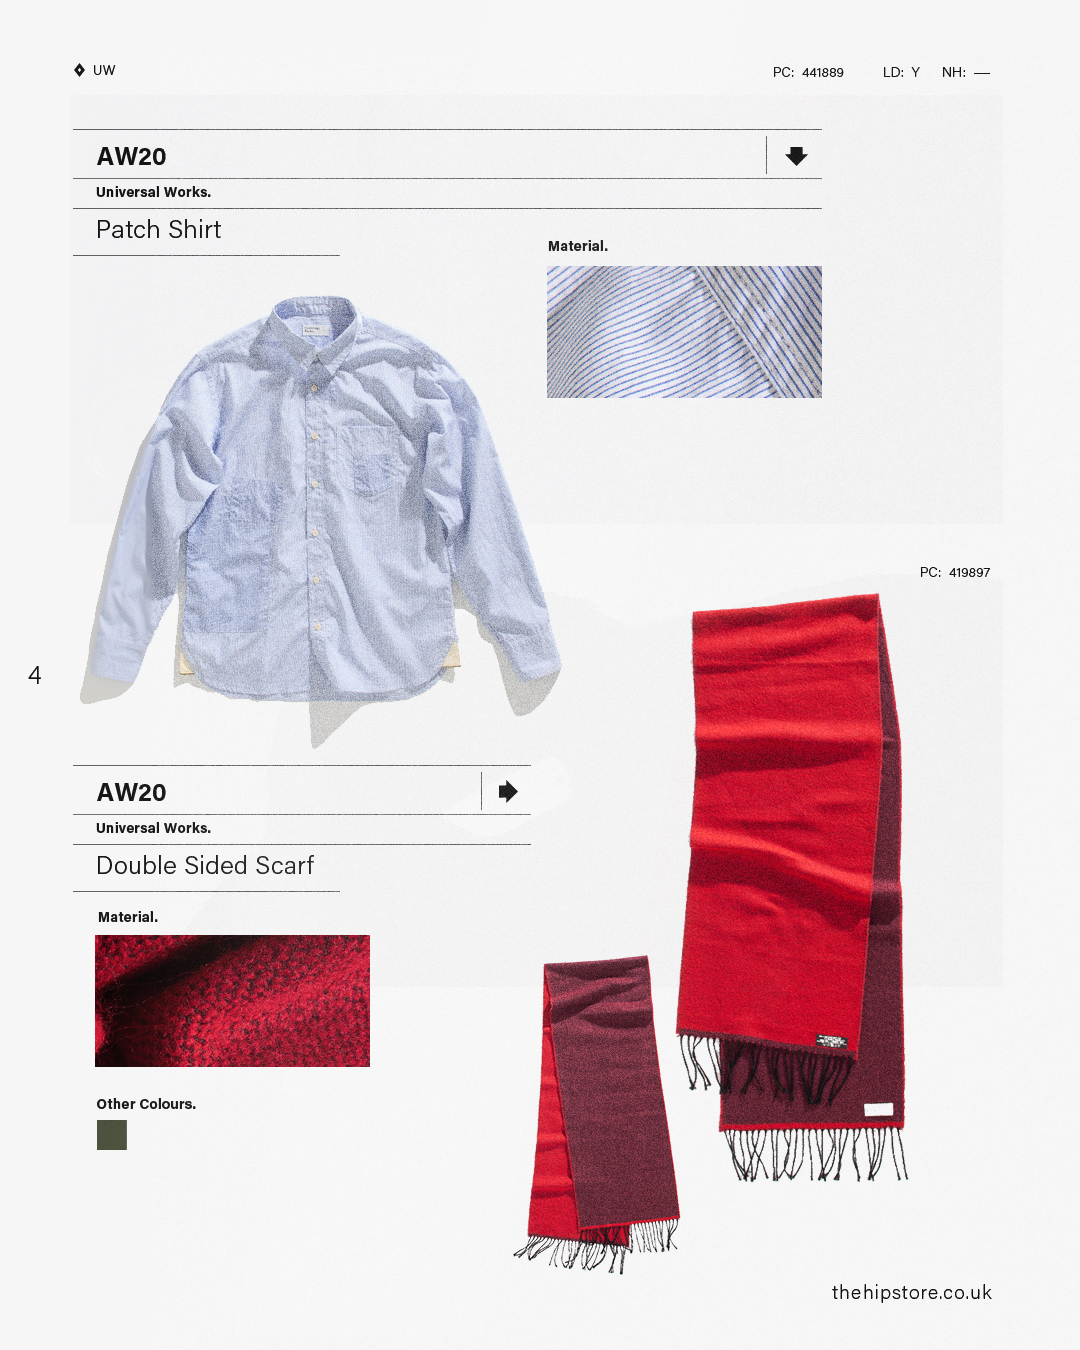 HIP Staff Picks: Universal Works AW20 Patch Shirt Double Sided Scarf